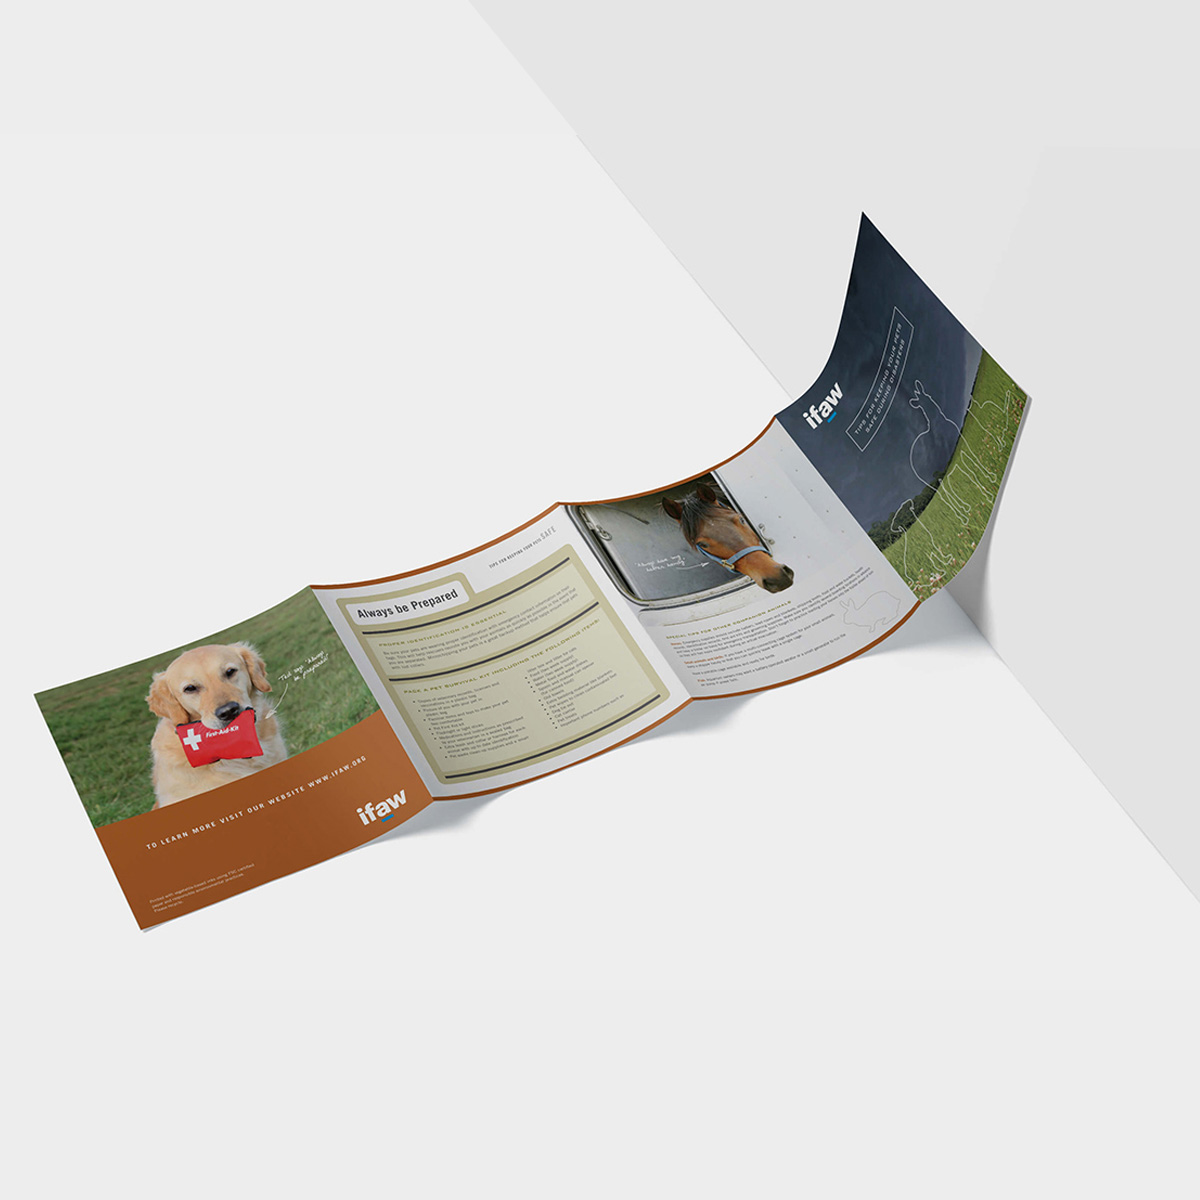 IFAW Rescue brochure spread with covers